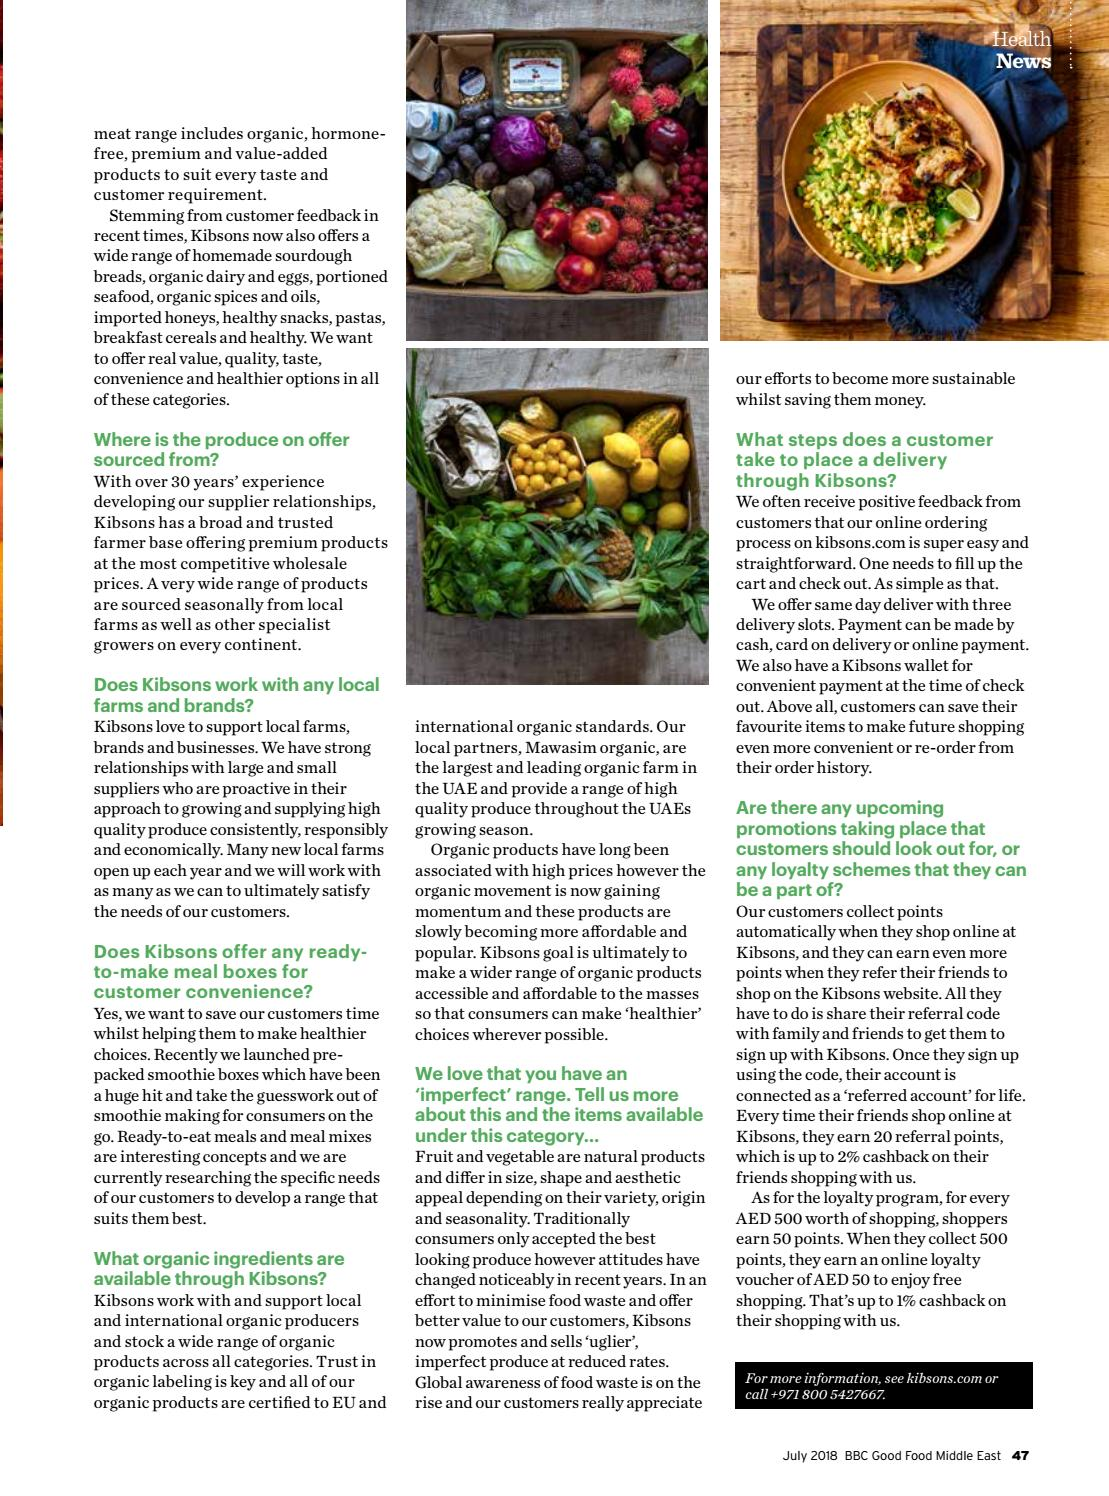 BBC Good Food ME - 2018 July by BBC Good Food Middle East - issuu